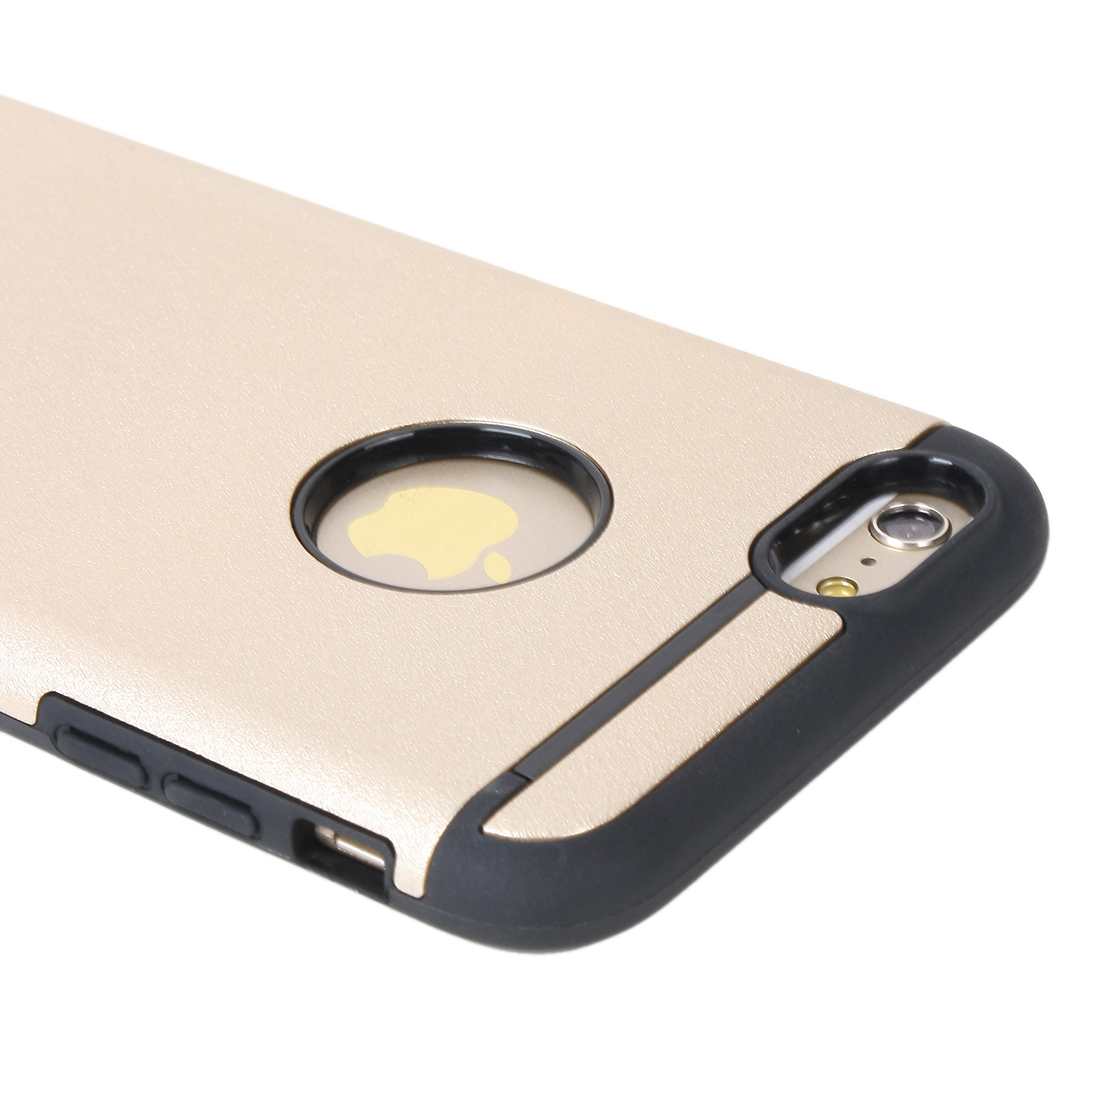 Shockproof Rugged Hybrid Rubber Hard Cover Case For Apple iPhone 6 Plus Gold Tone